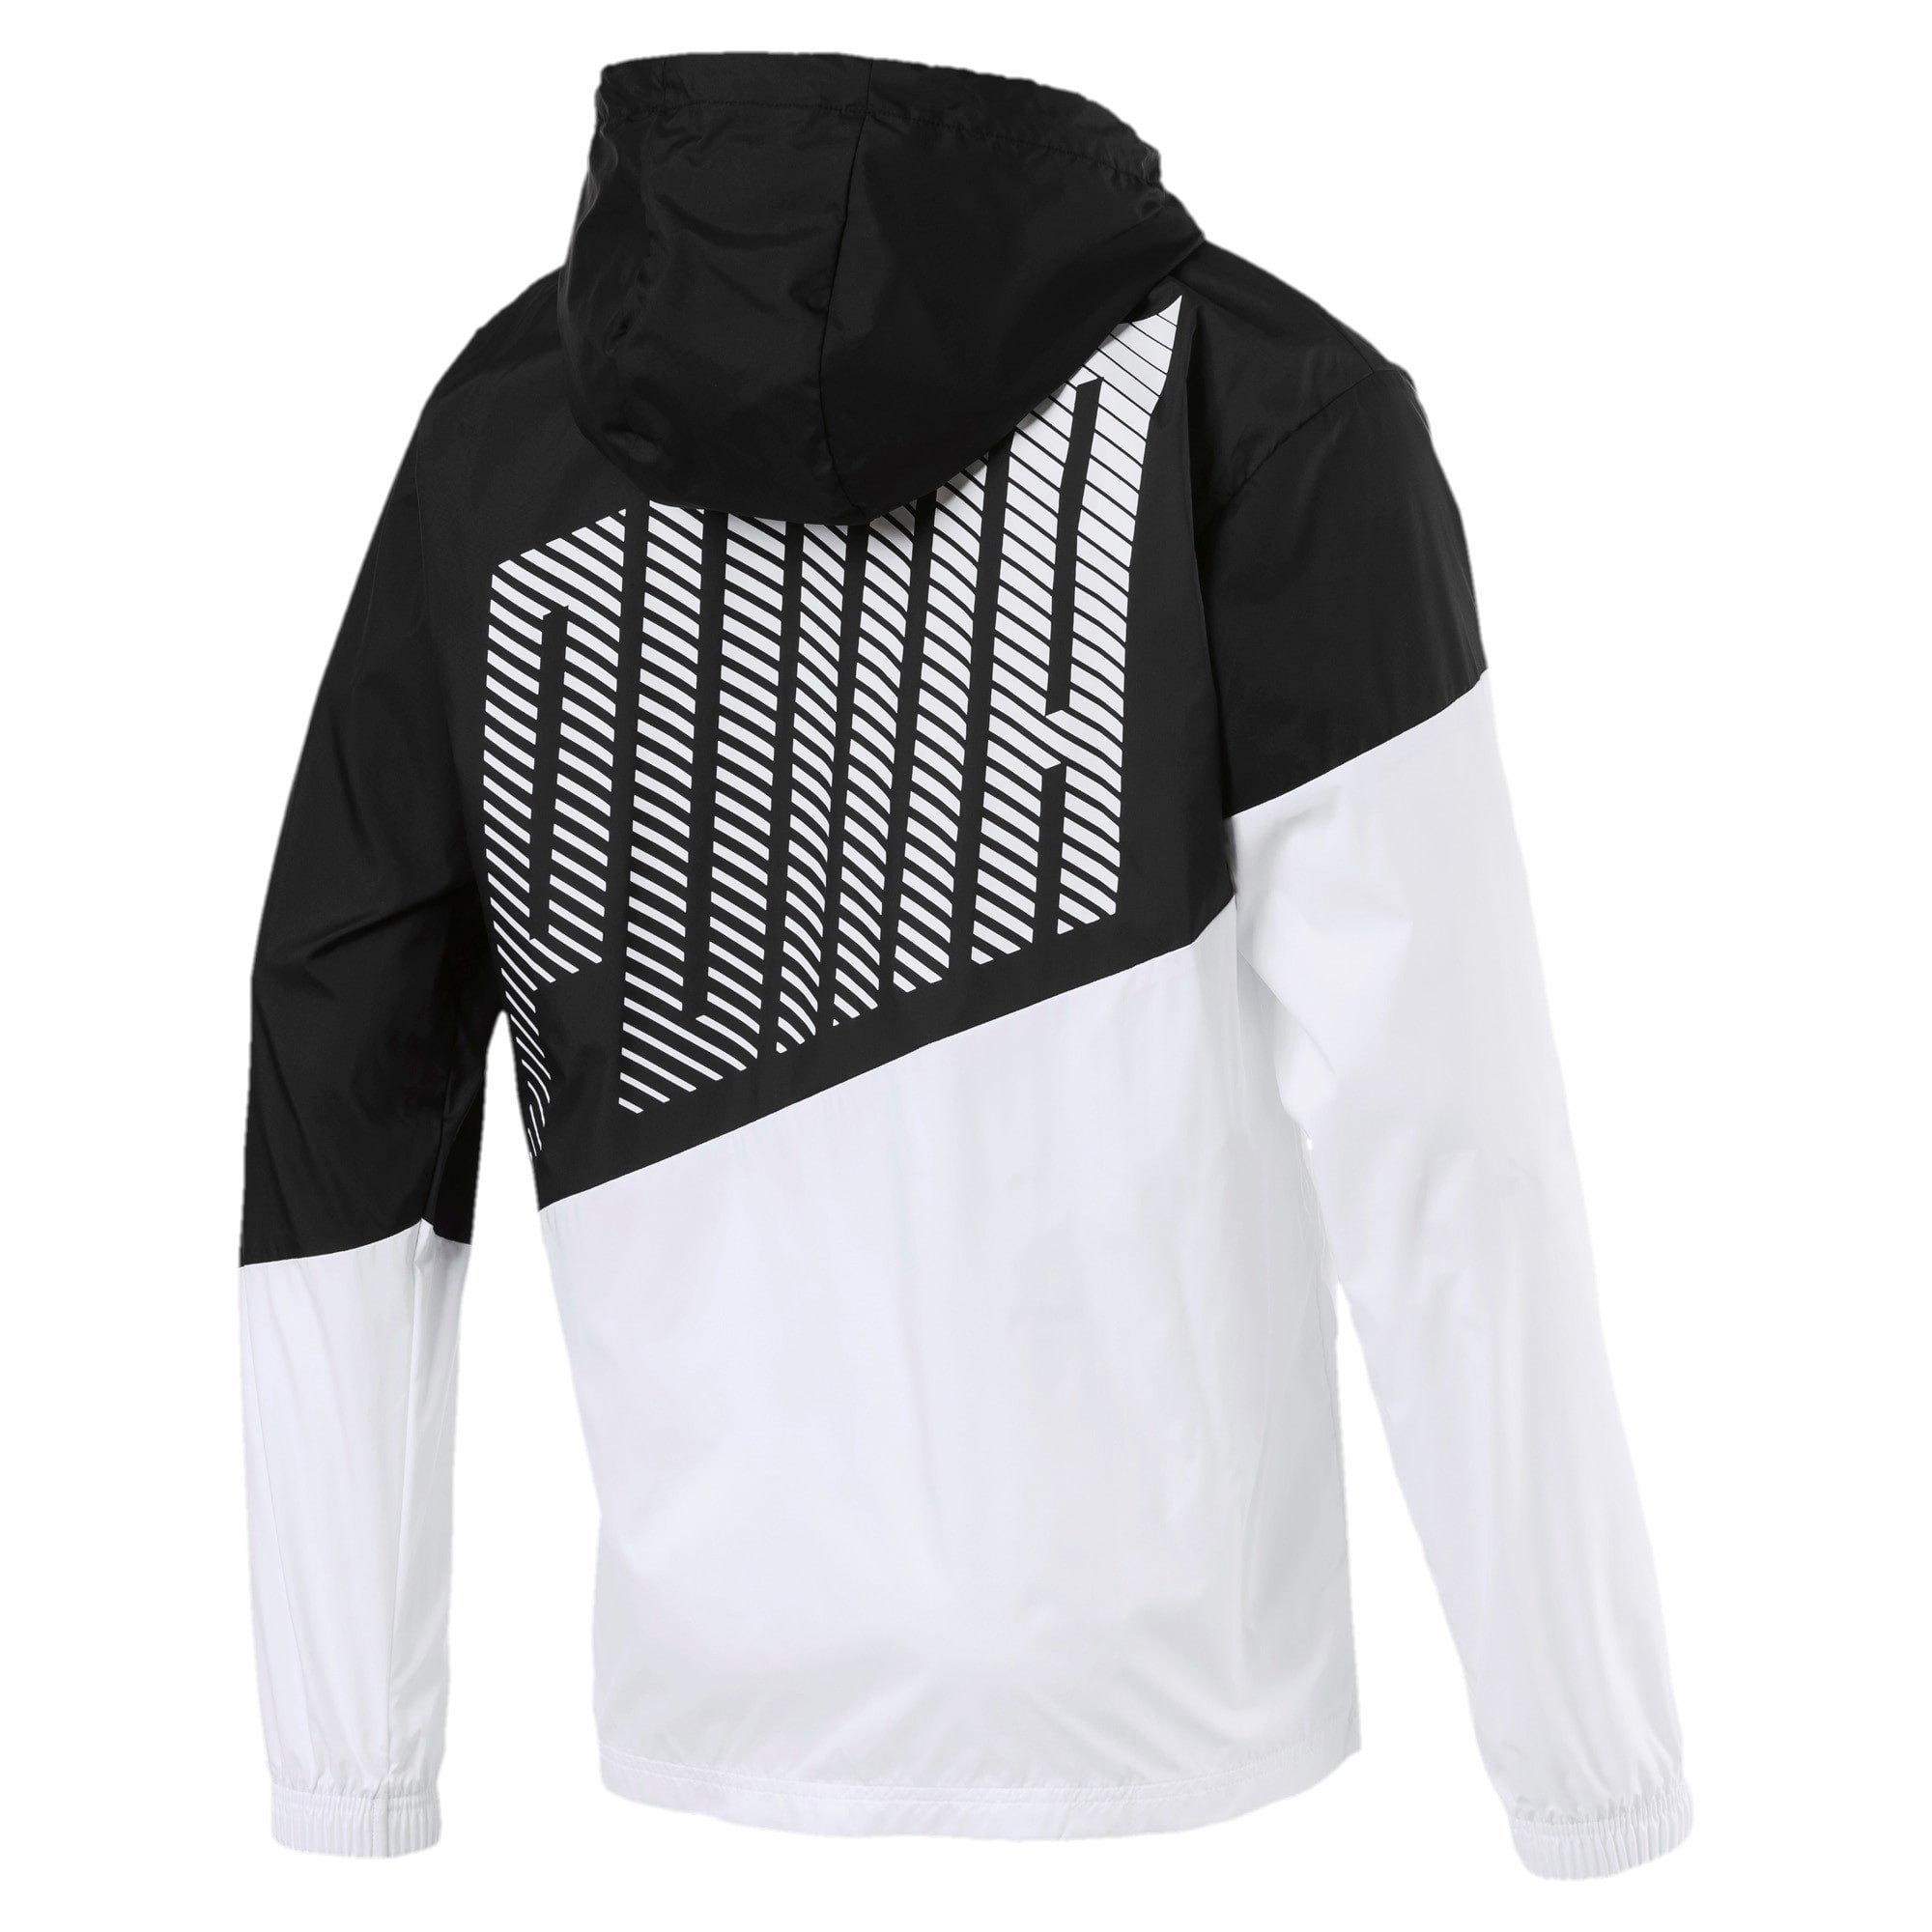 Thumbnail 6 of A.C.E. Men's Windbreaker, Puma Black-Puma White, medium